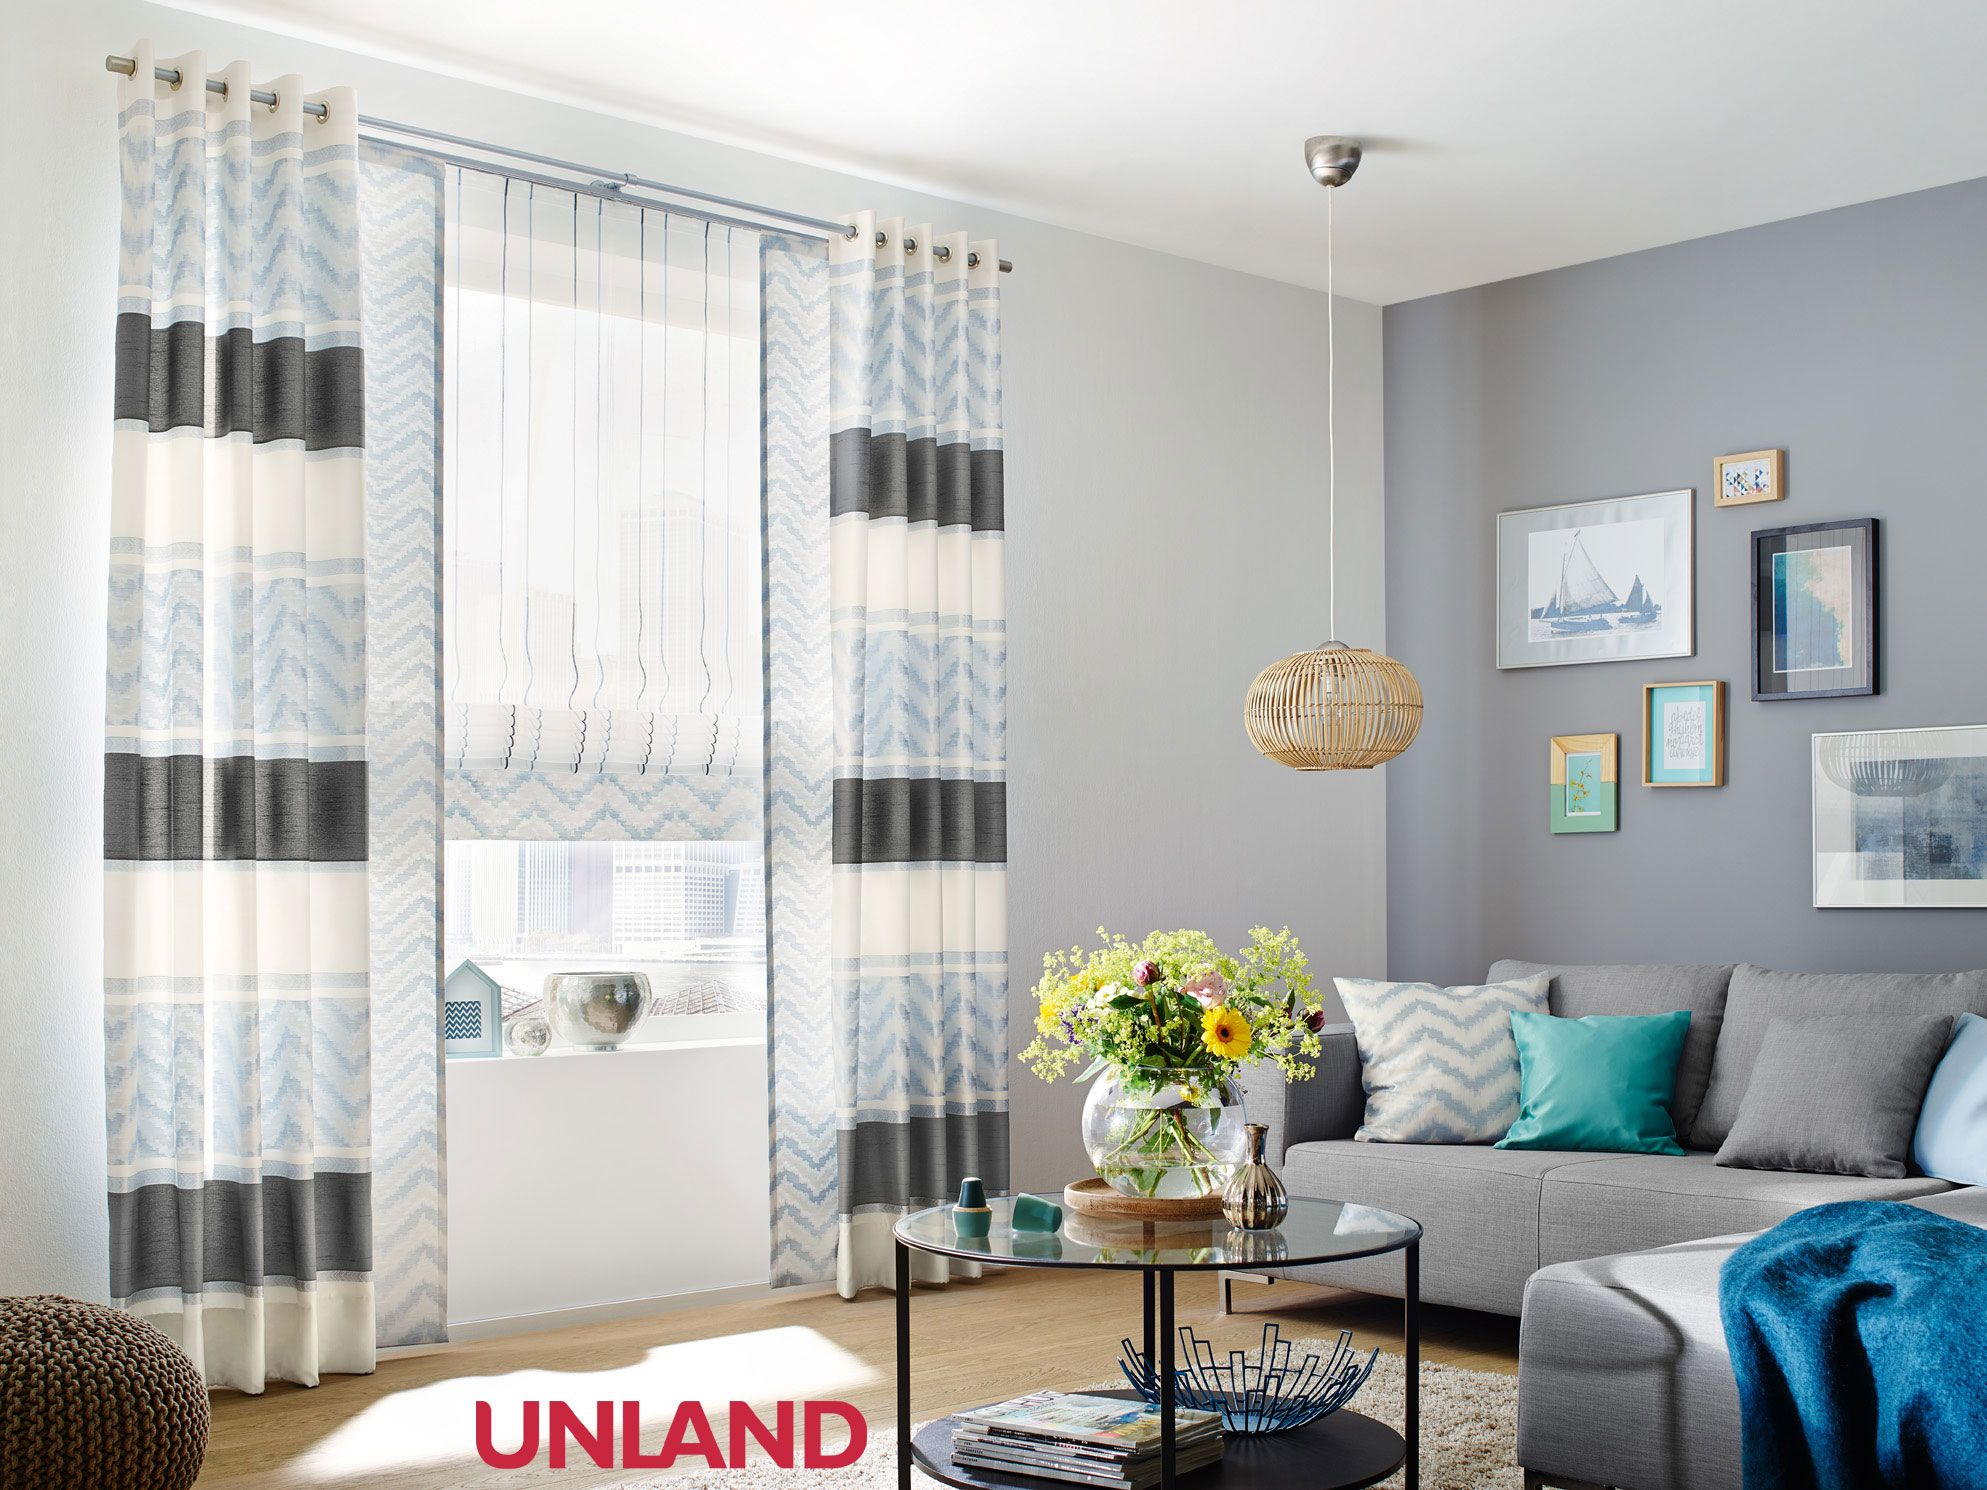 unland rafael vorhang fensterideen gardinen und sonnenschutz curtains contract fabrics. Black Bedroom Furniture Sets. Home Design Ideas